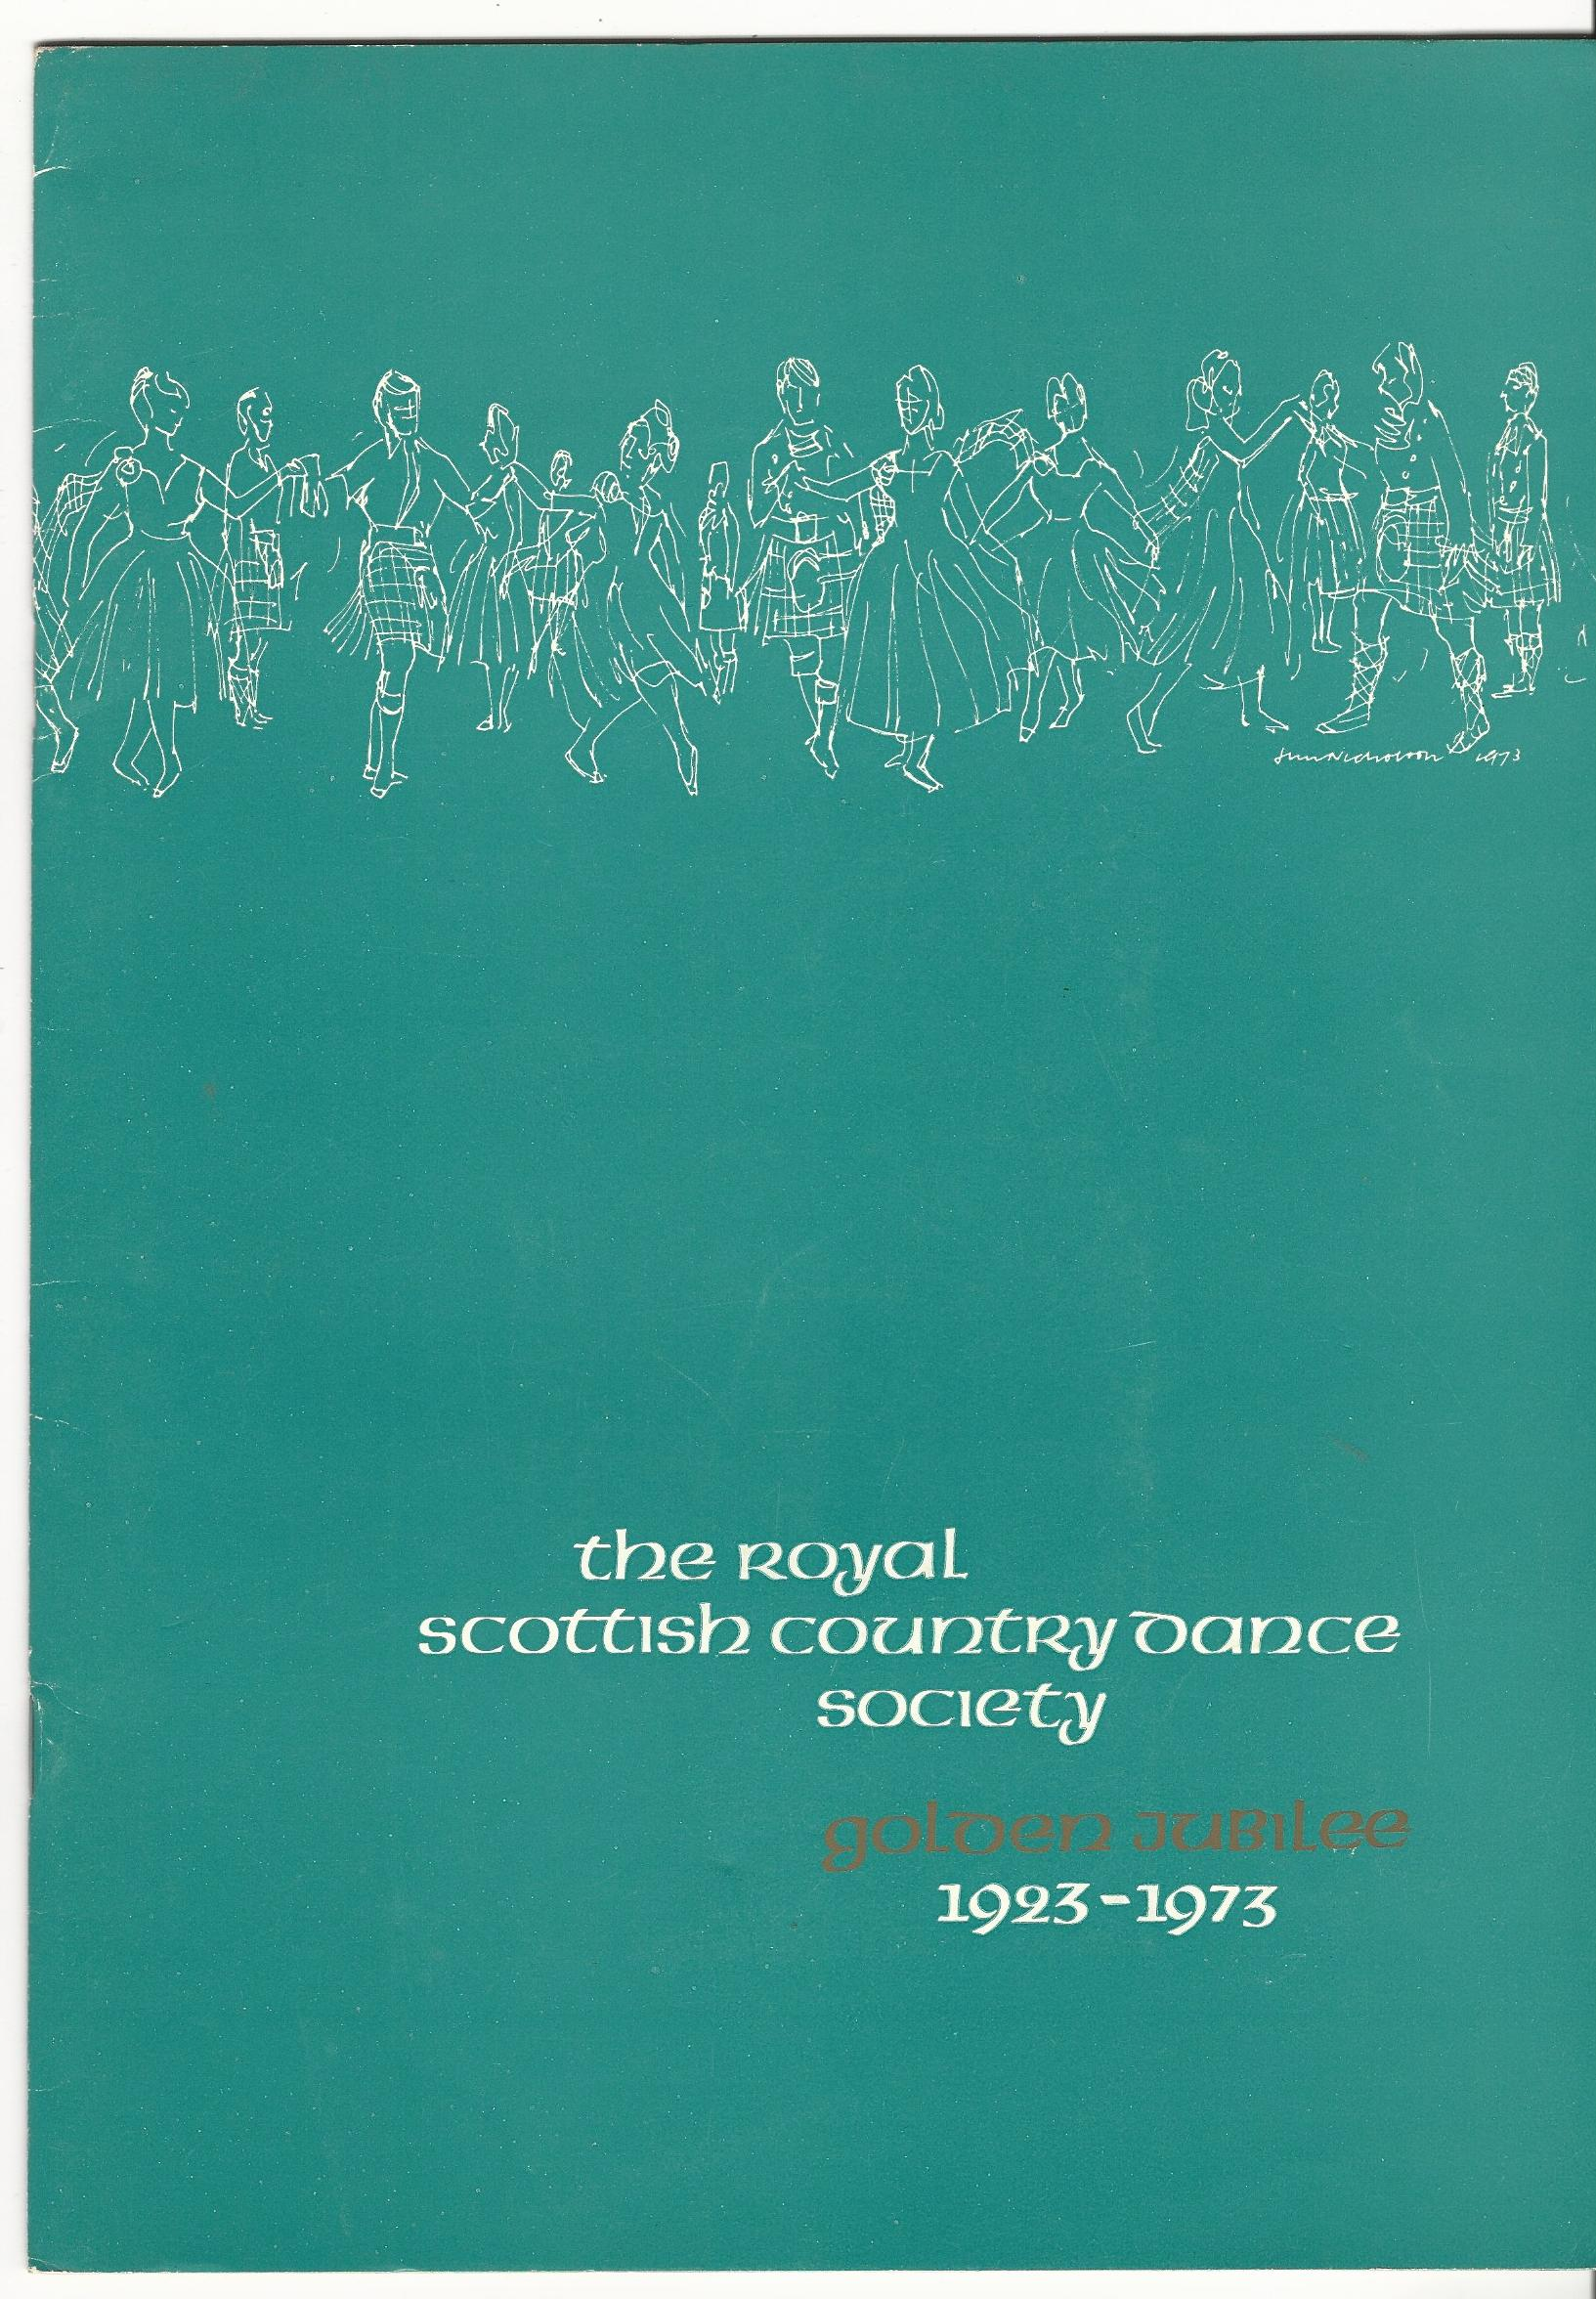 Image for The Royal Scottish Country Dance Society Golden Jubilee 1923-1973